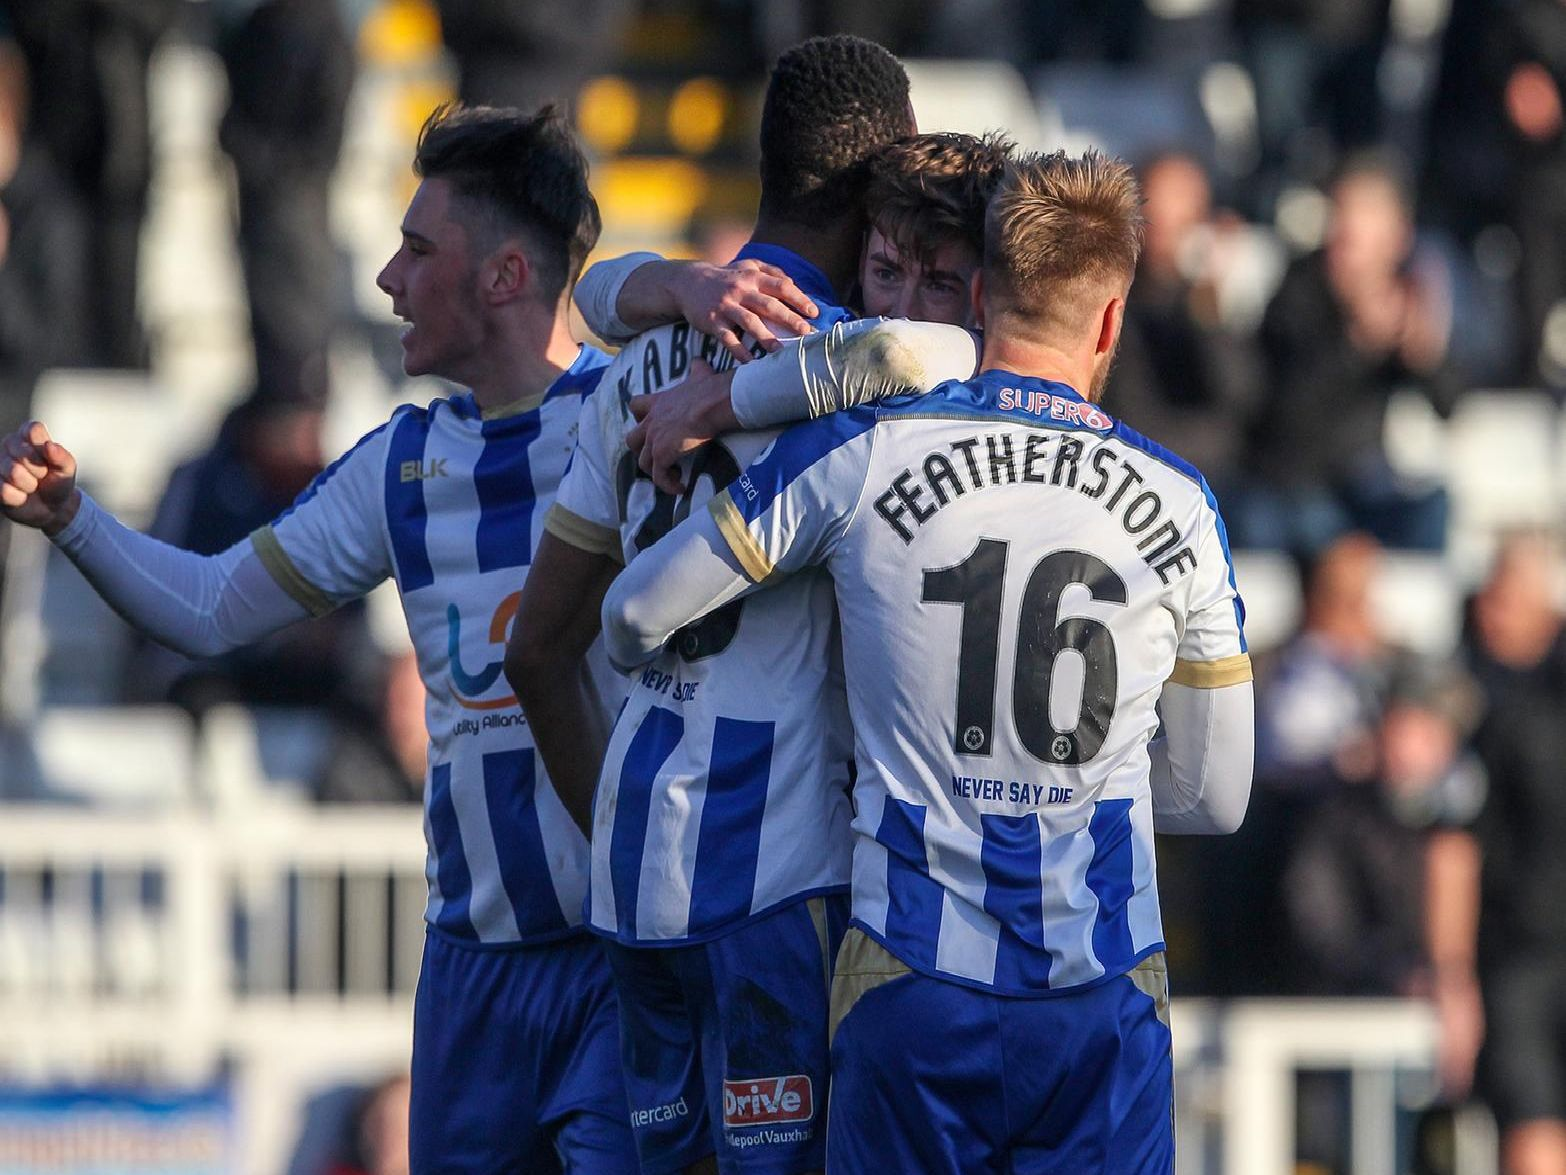 Hartlepool United players celebrate their goal against Leyton Orient.